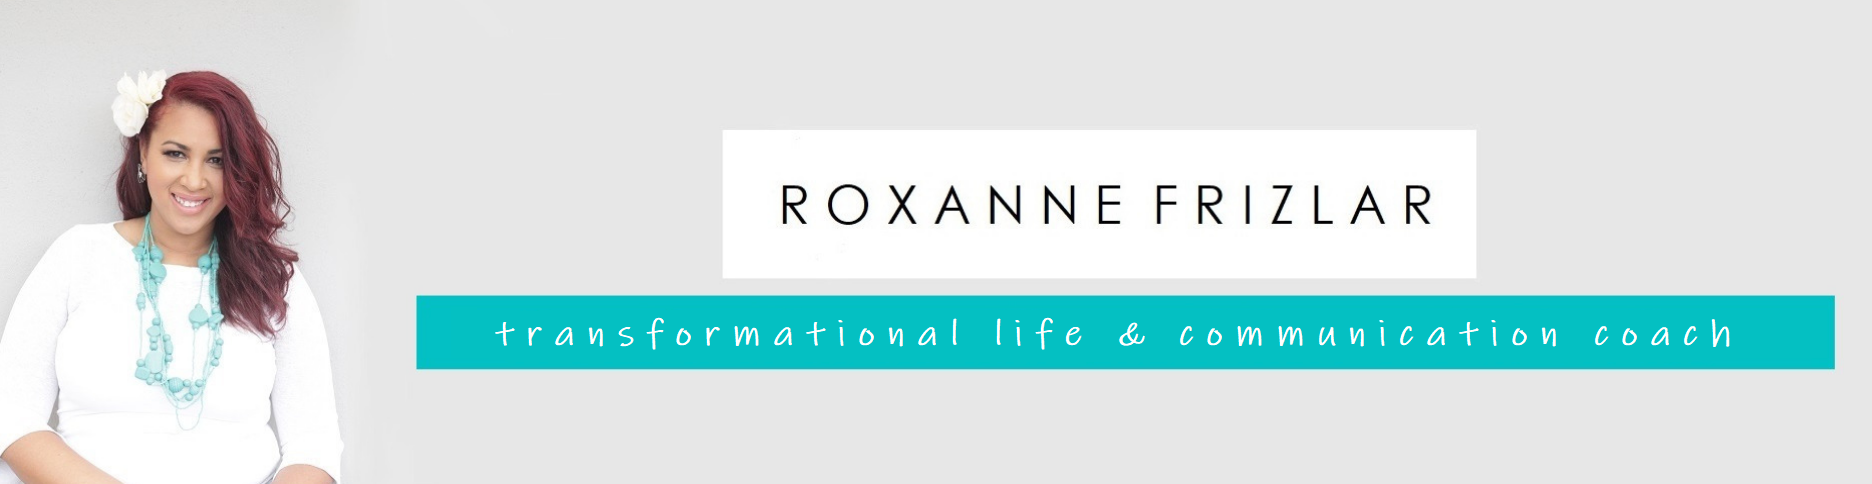 Roxanne Frizlar – Transformational Life & Communication Coach